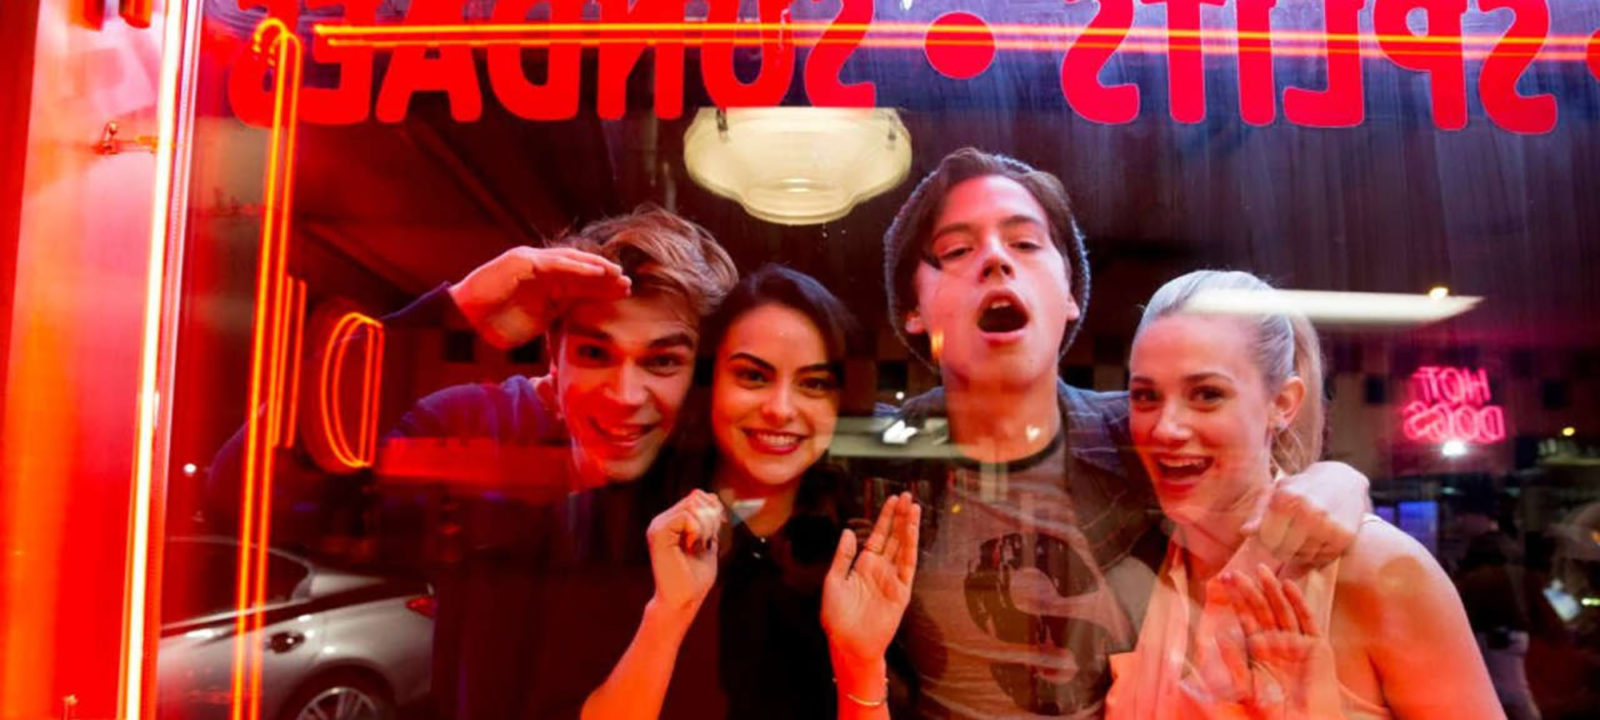 K.J. Apa (Archie), Camila Mendes (Veronica), Cole Sprouse (Jughead) and Lili Reinhart (Betty) in 'Riverdale'. (Pic: CBS/The CW)